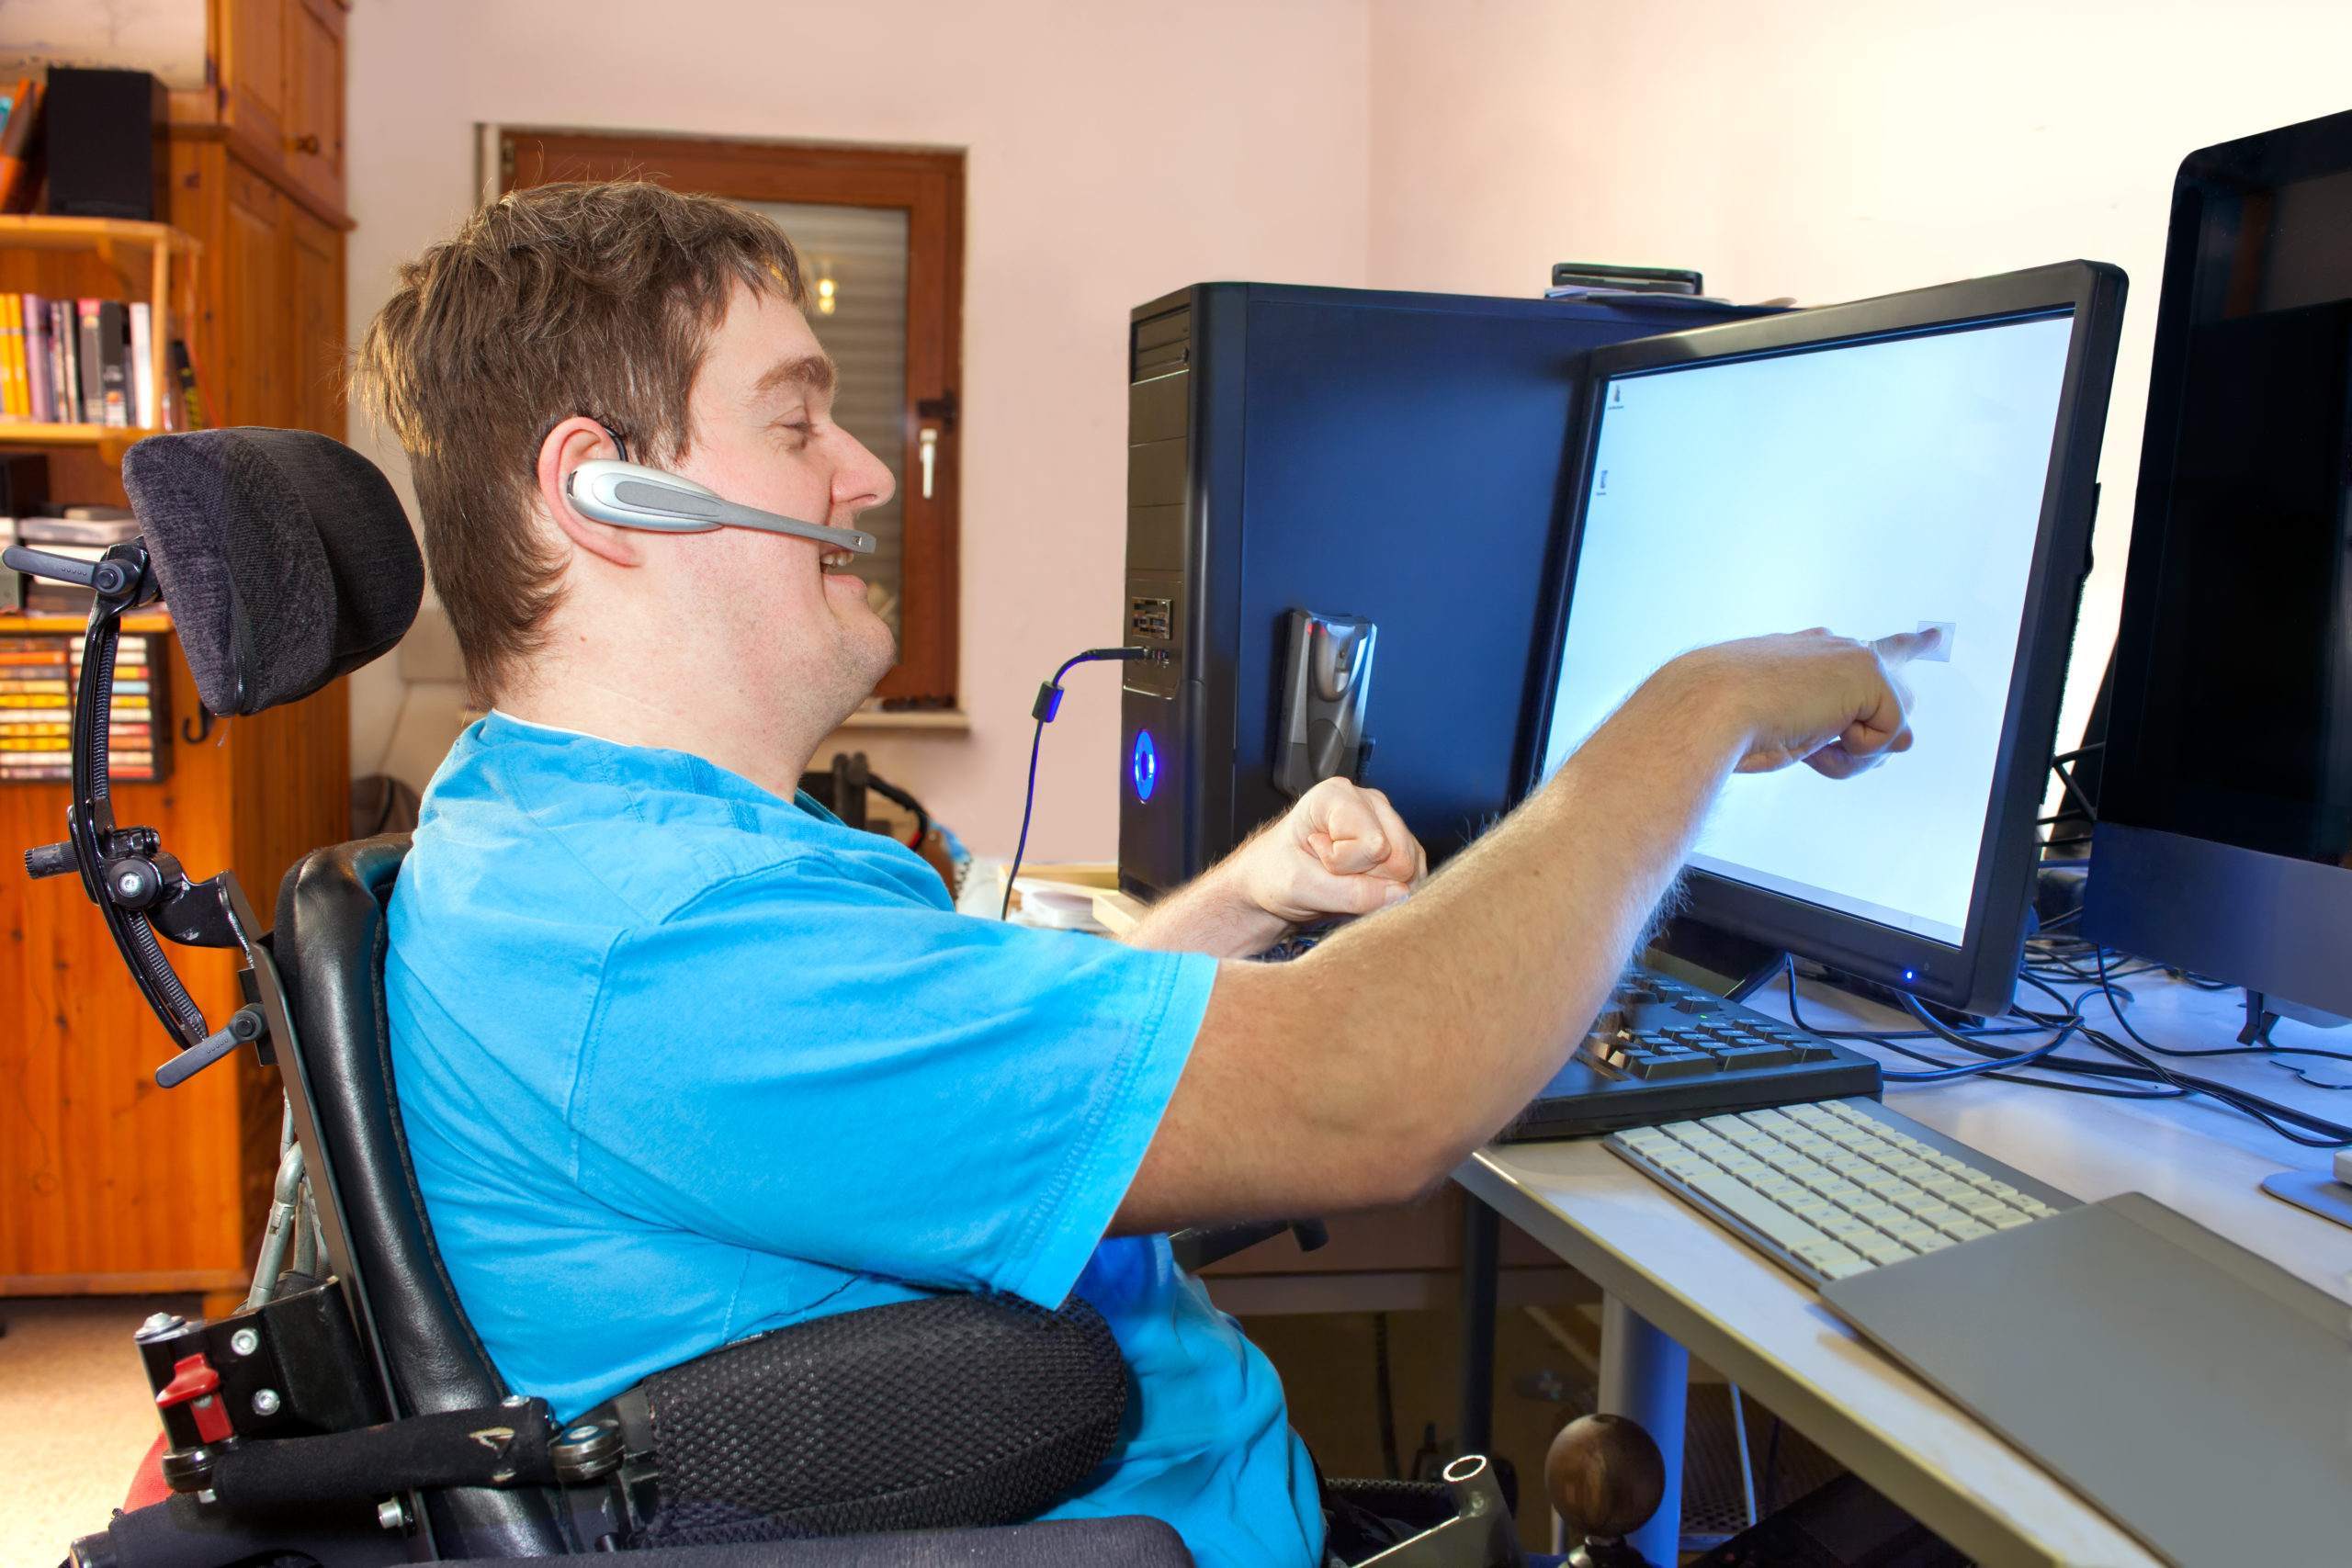 Image of a man with cerebral palsy in a wheelchair using adaptive technology on a computer. The man is wearing a blue tshirt and a bluetooth headset, and is smiling